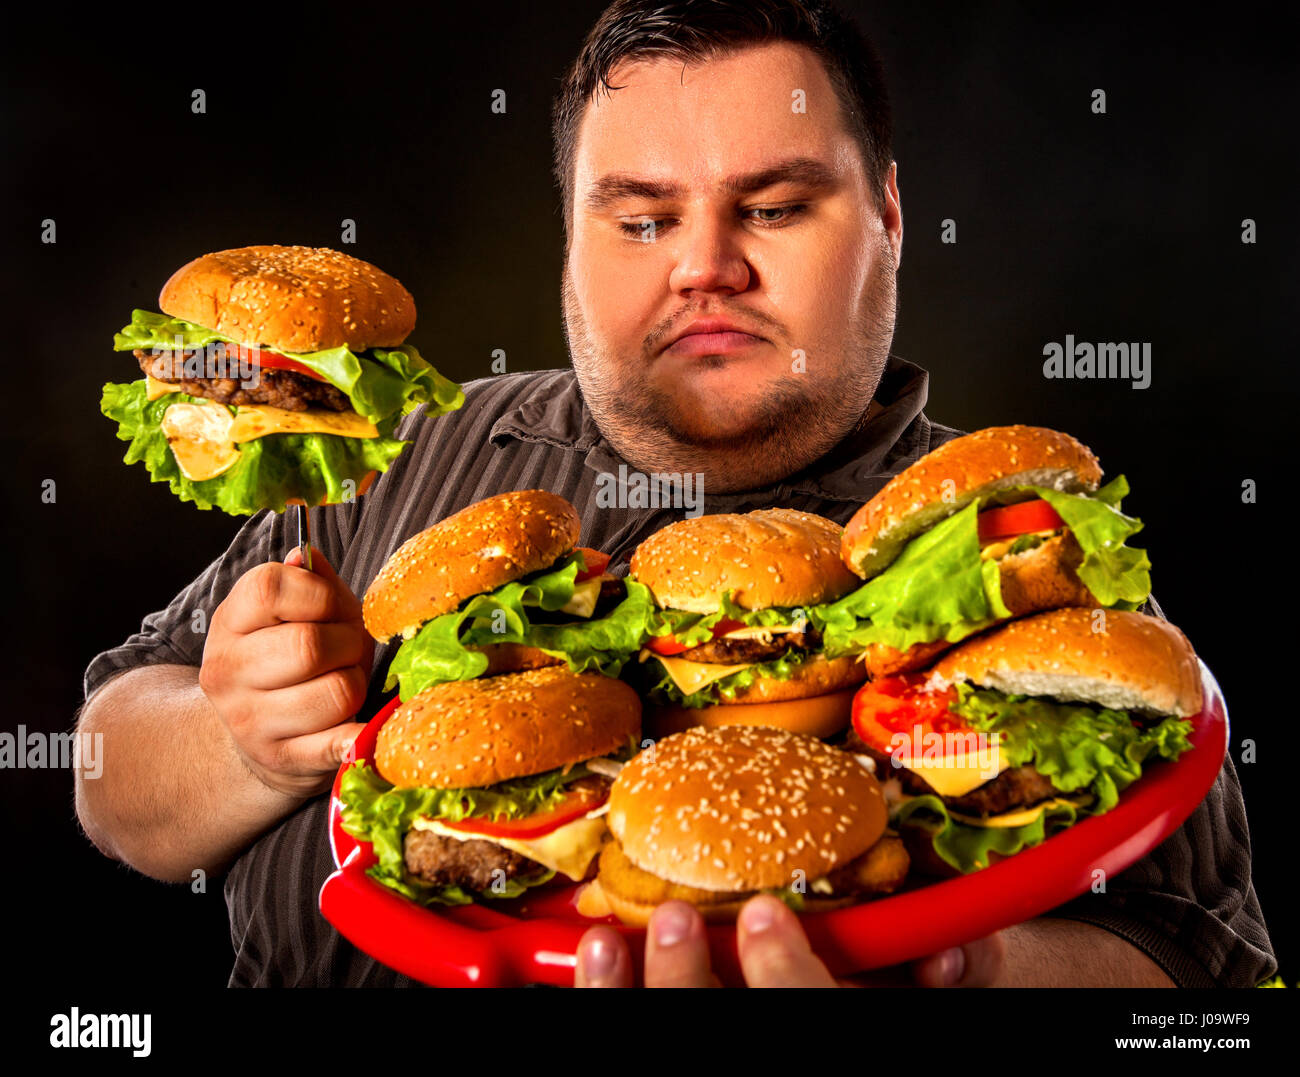 Eating Happy Burger Fat Guy